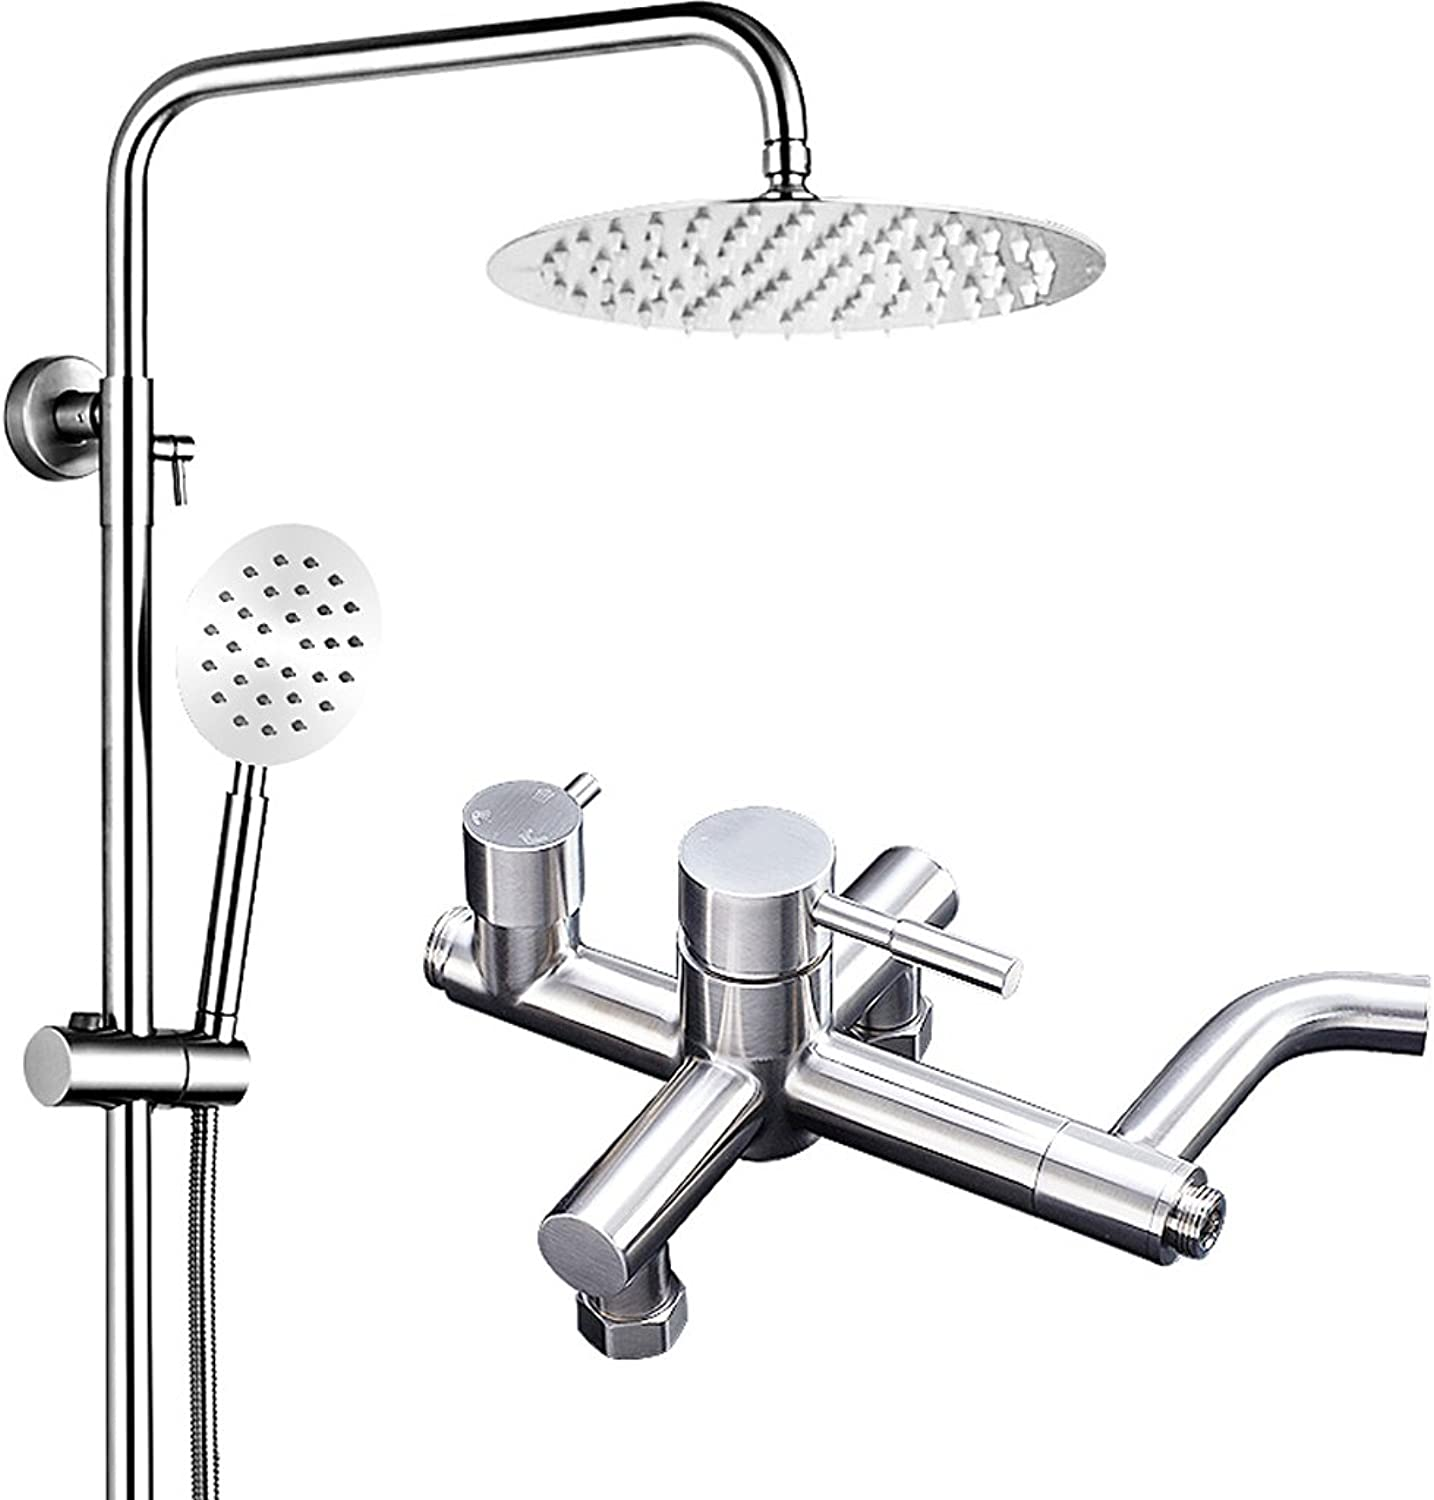 Edge to Shower set Stainless steel shower shower set hot and cold faucet shower shower shower head shower set